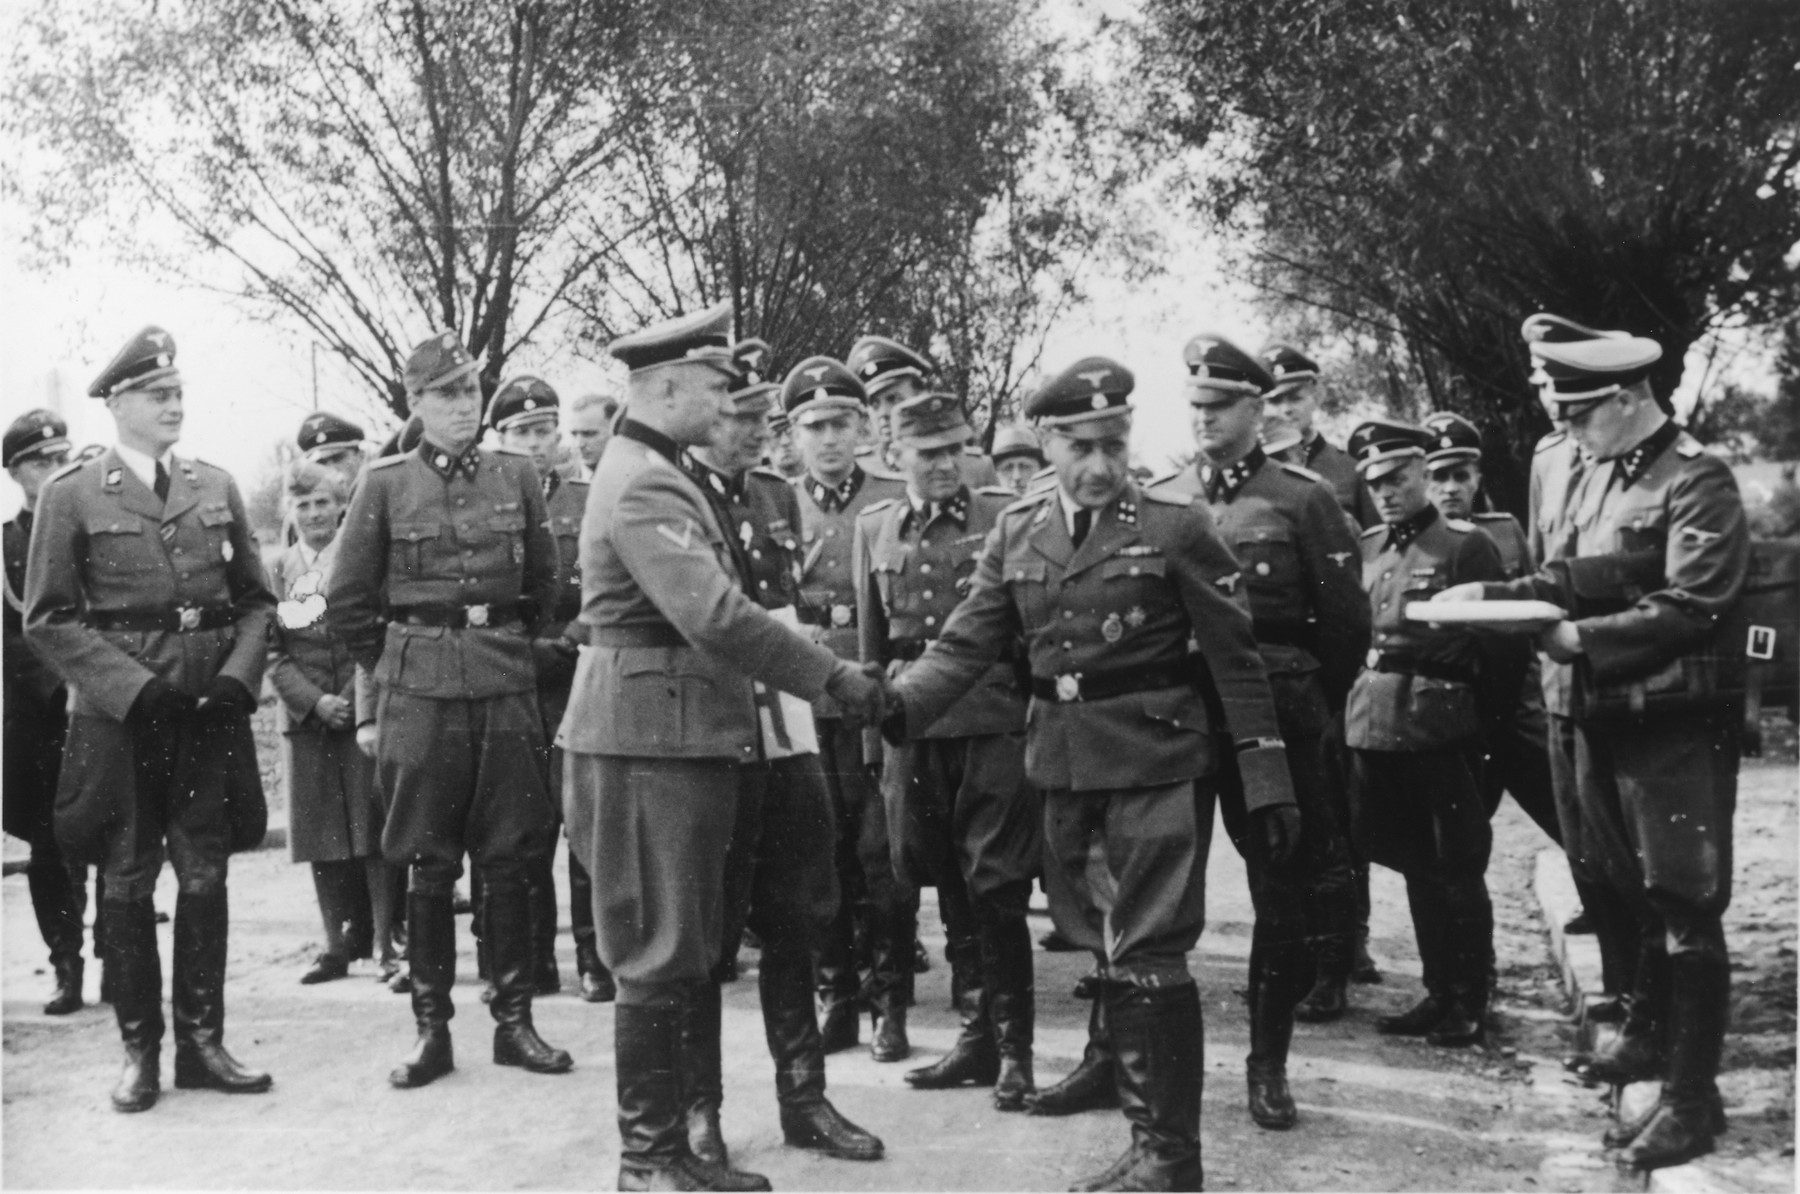 "Nazi officers watch Commandant Richard Baer  shakes hands with Karl Bischoff during the dedication of the new SS hospital in Auschwitz.  The original caption reads ""Besichtigung"" (tour).  Also pictured are Dr. Eduard Wirths standing on the far left, Dr. Heinz Baumkoetter (sixth from left), Karl Hoecker and Rudolf Hoess.  Holding the documents on the right is (most probably Werner Jothann).  To the right of Wirths, is (probably August Harbaum, adjutant to Richard Gluecks).   Between Wirths and Harbaum is probably Maria Mandl.  Also pictured are Enno Lolling and Karl Moeckel."